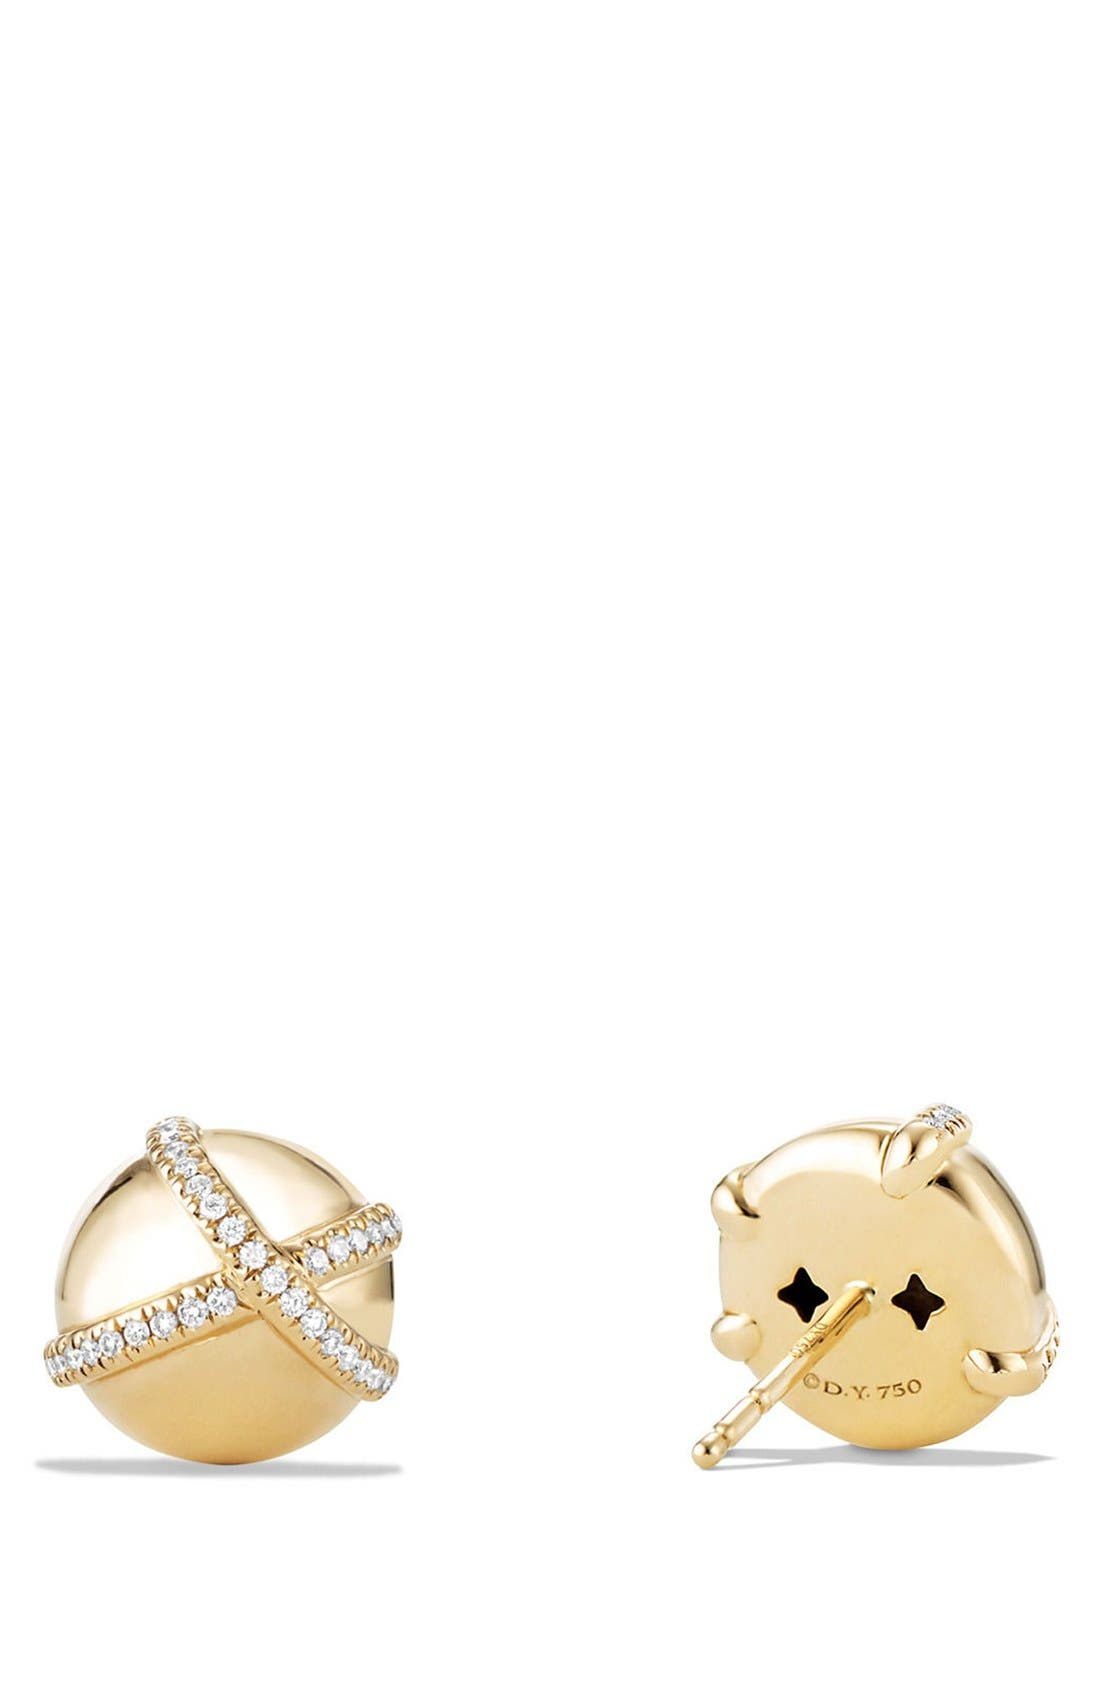 'Solari' Wrap Stud Earrings with Pavé Diamonds in 18K Gold,                             Alternate thumbnail 2, color,                             YELLOW GOLD